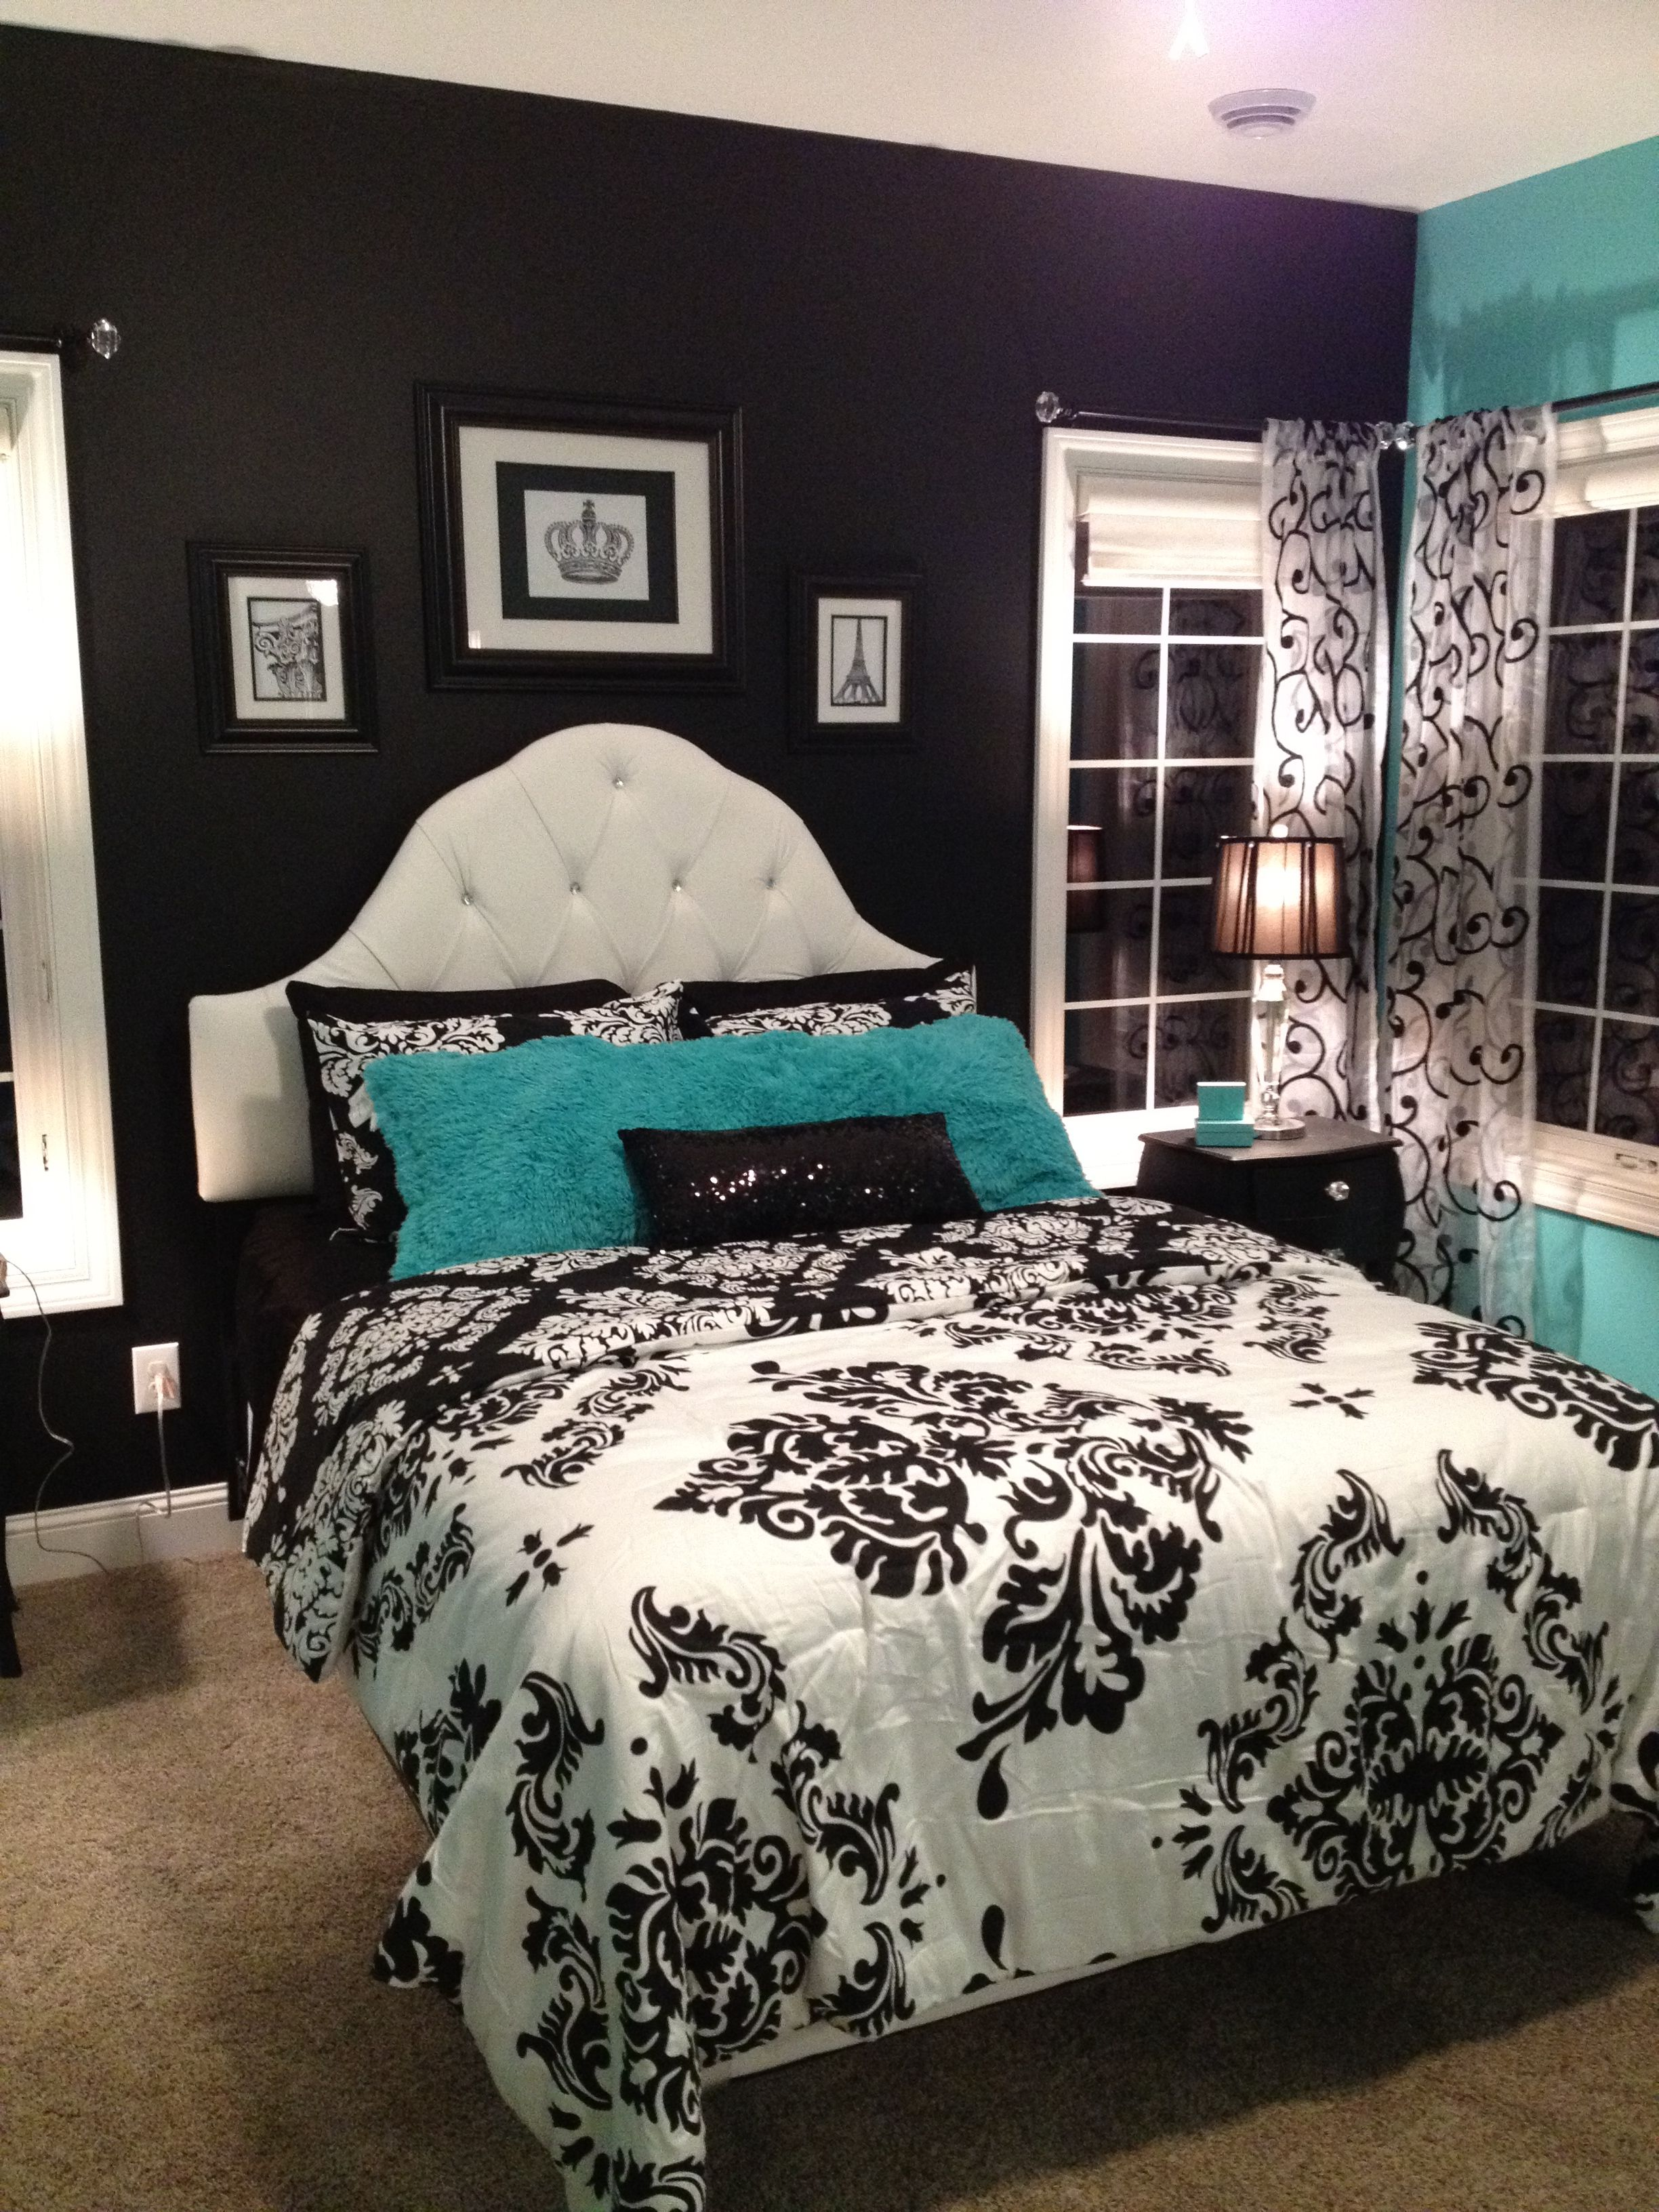 Tiffany Co Inspired Room For Sydney My Style Pinterest Tiffany Sydney And Room